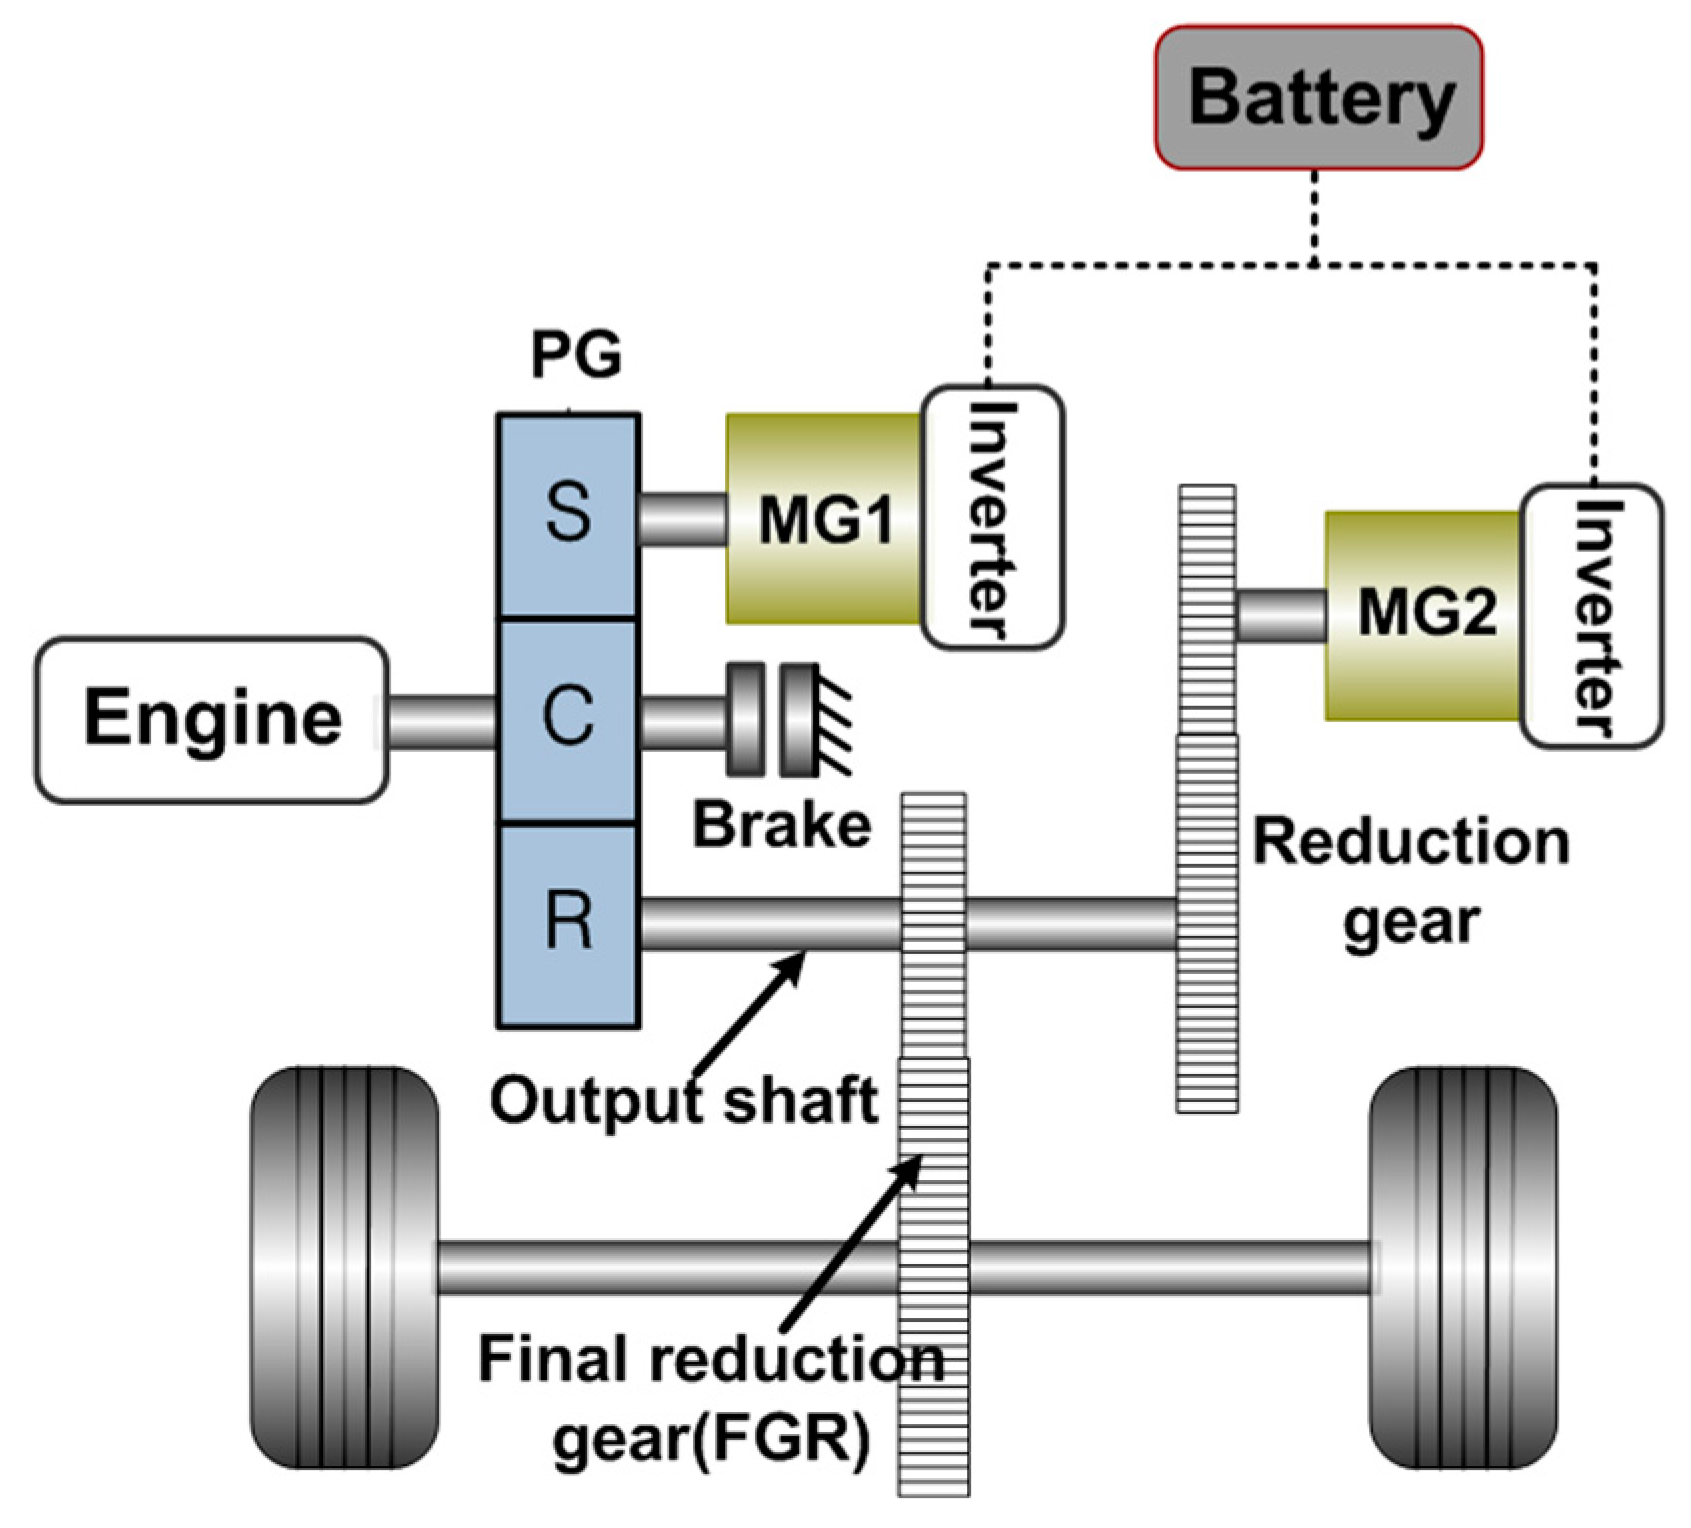 Energies Free Full Text Development Of Near Optimal Rule Based Hybrid Electric Car Diagram No